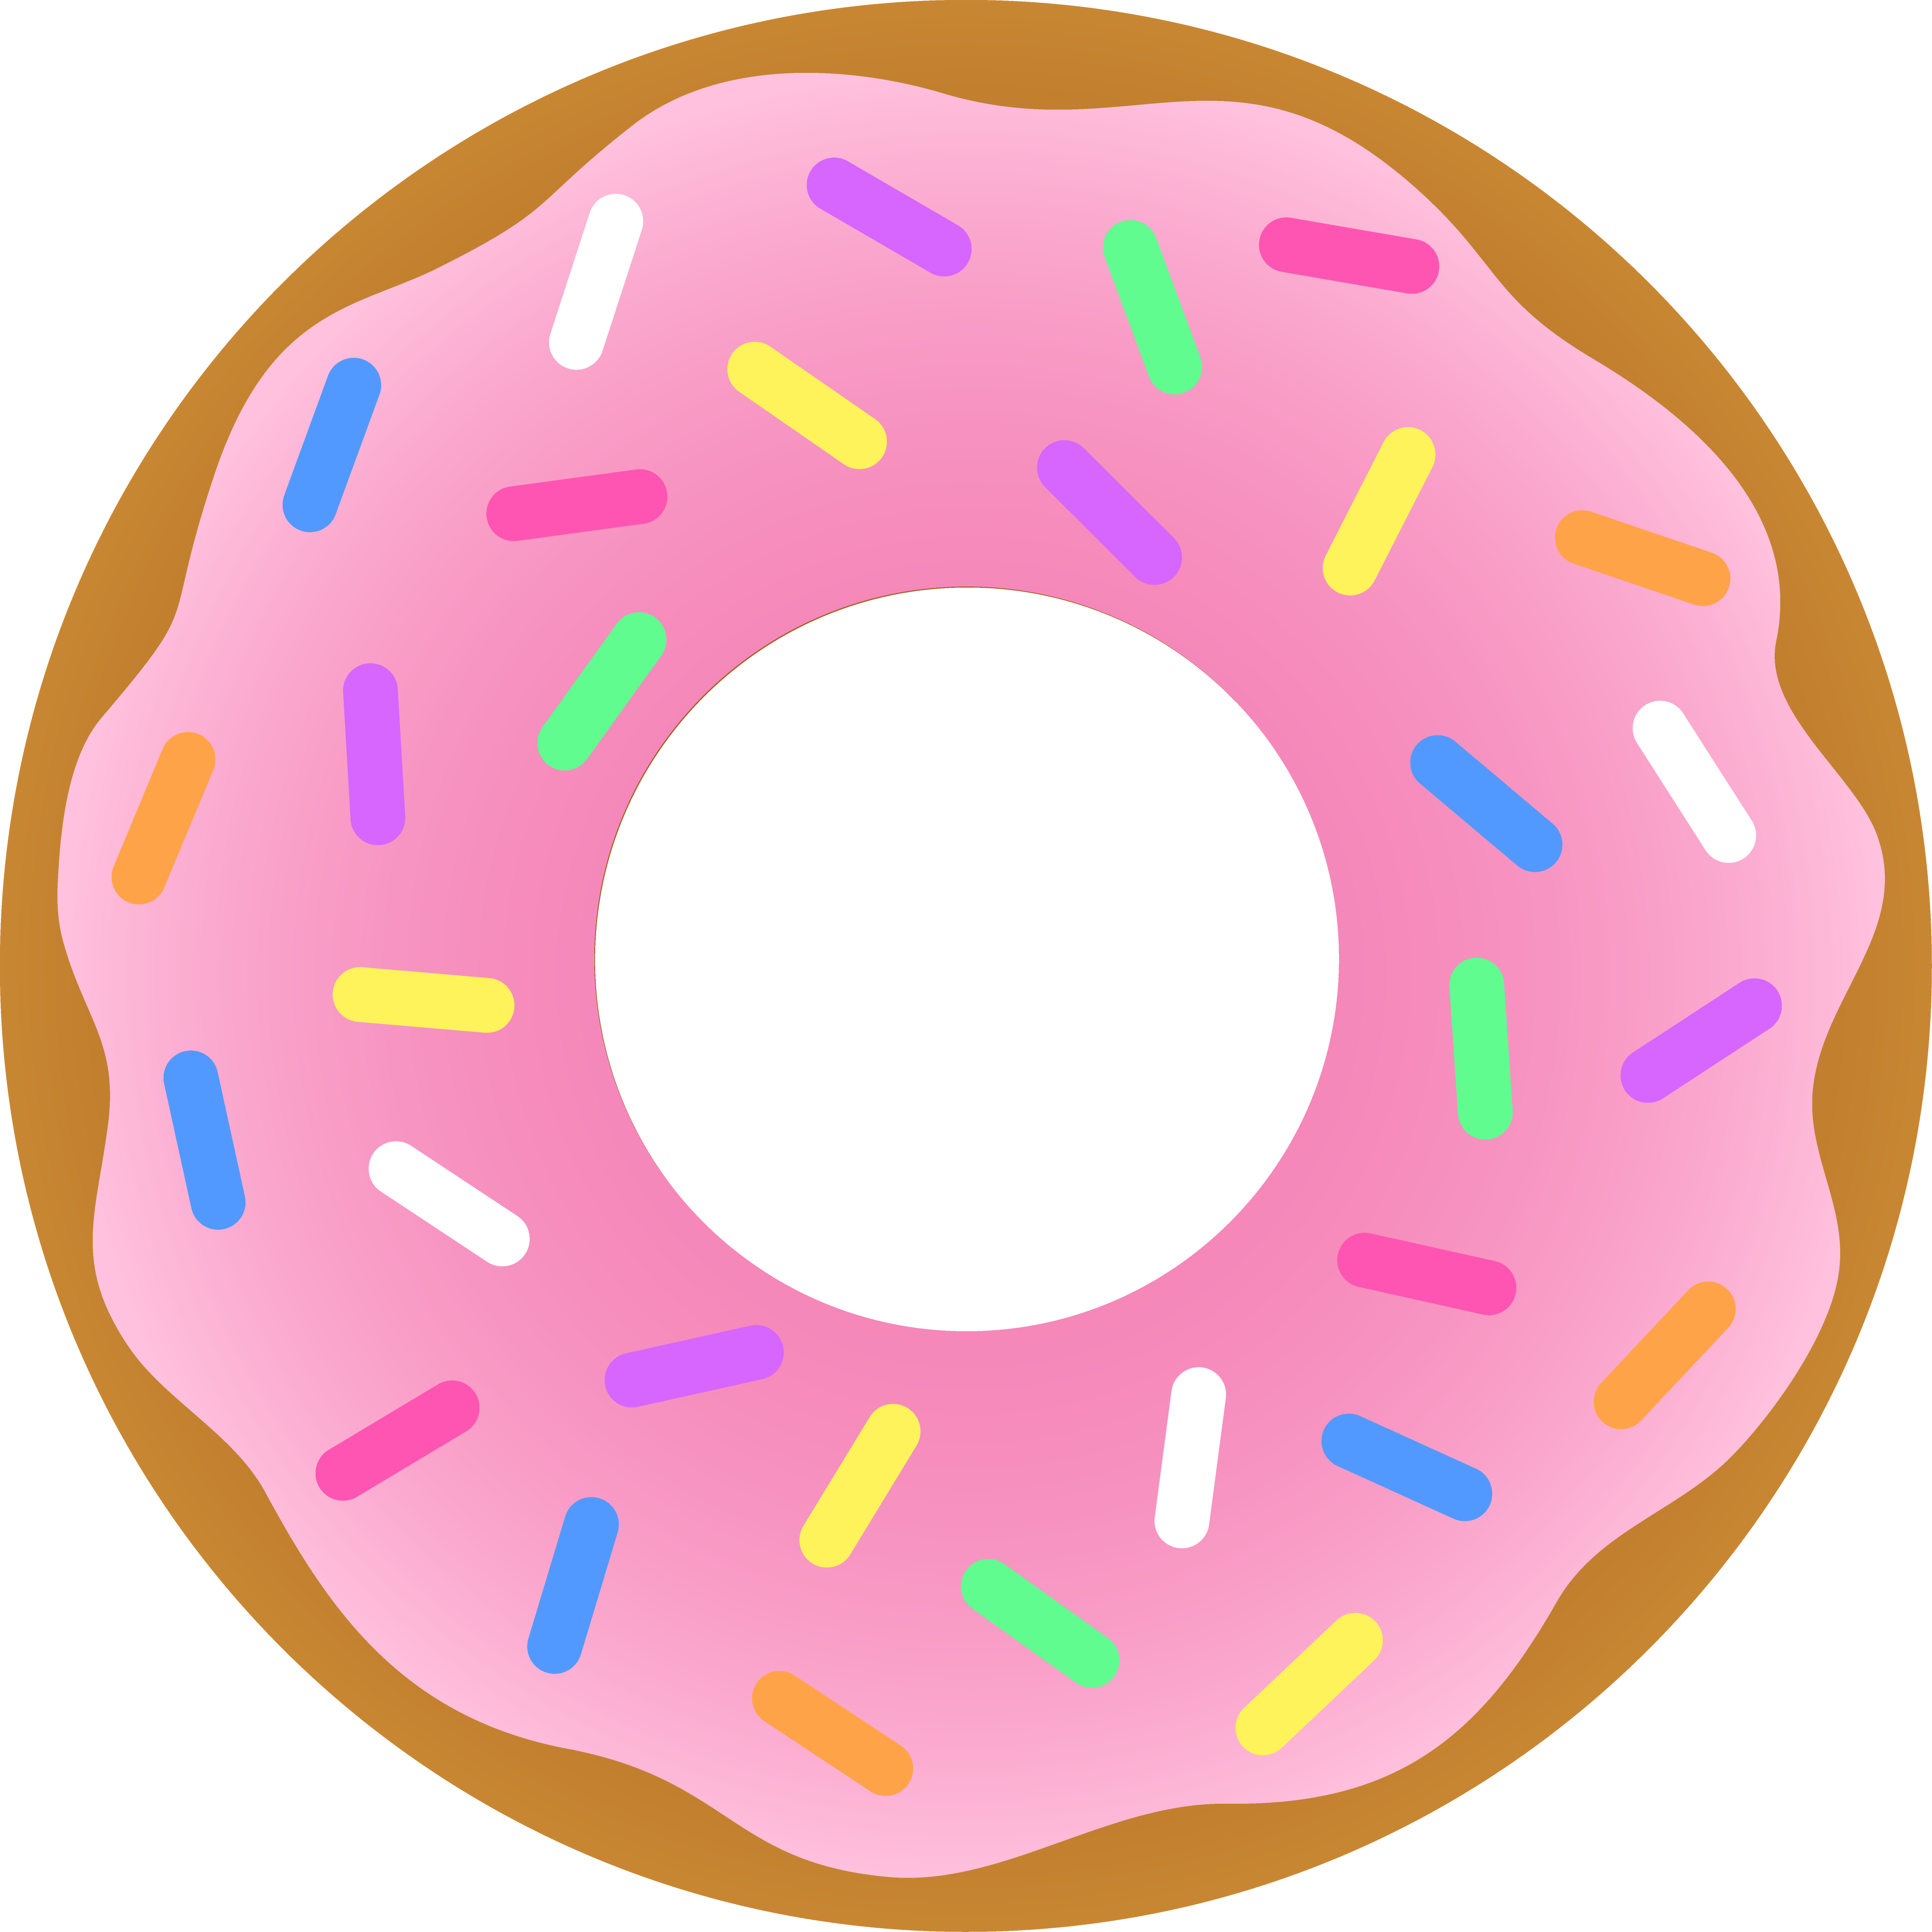 Donut clipart colorful. Pink free image